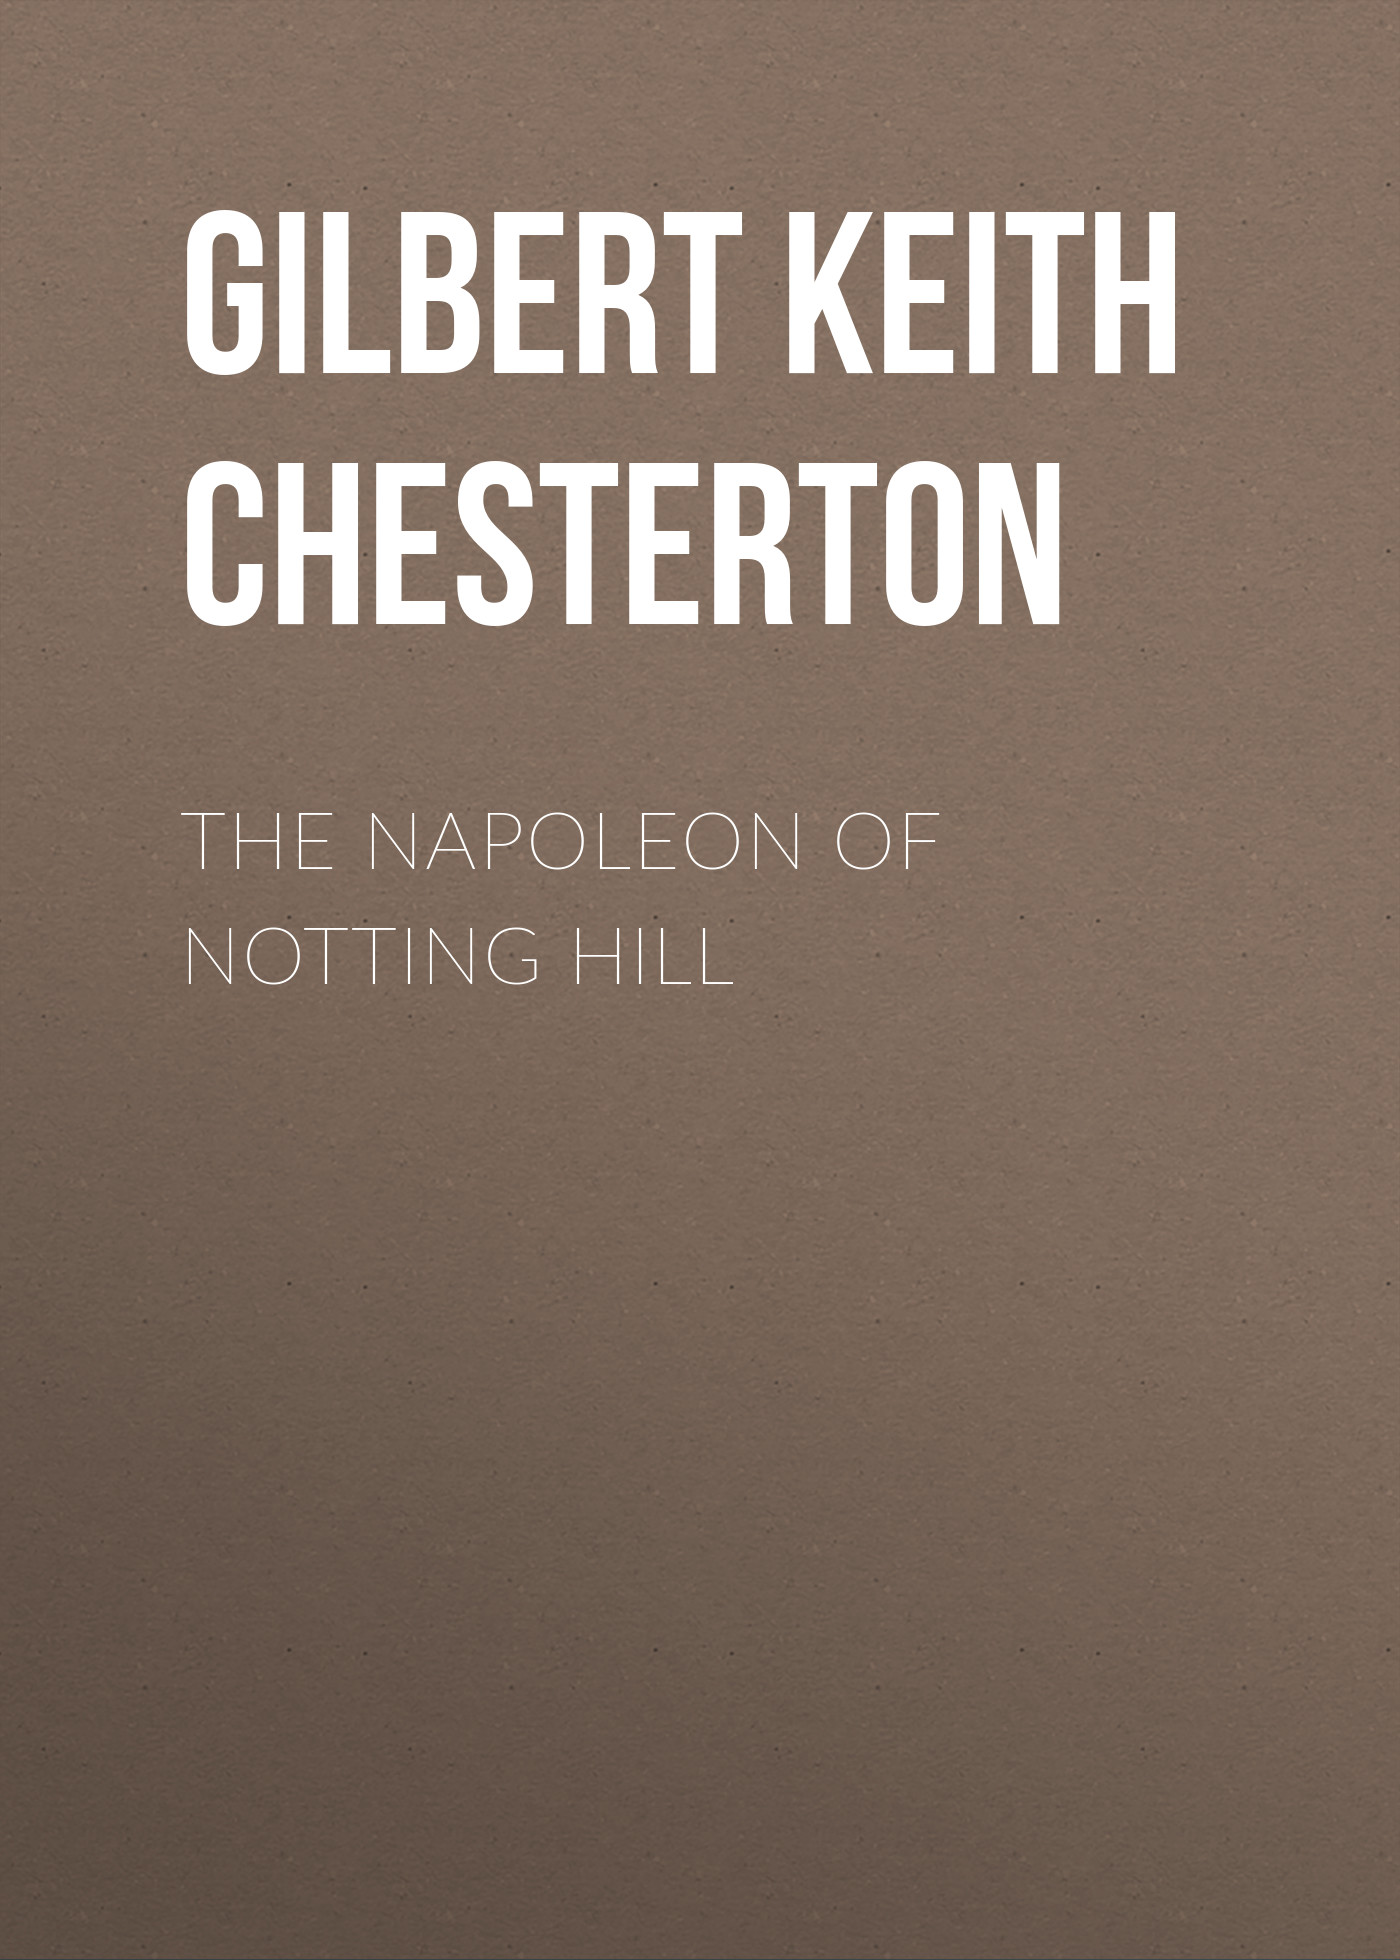 Gilbert Keith Chesterton The Napoleon of Notting Hill gilbert keith chesterton the ball and the cross